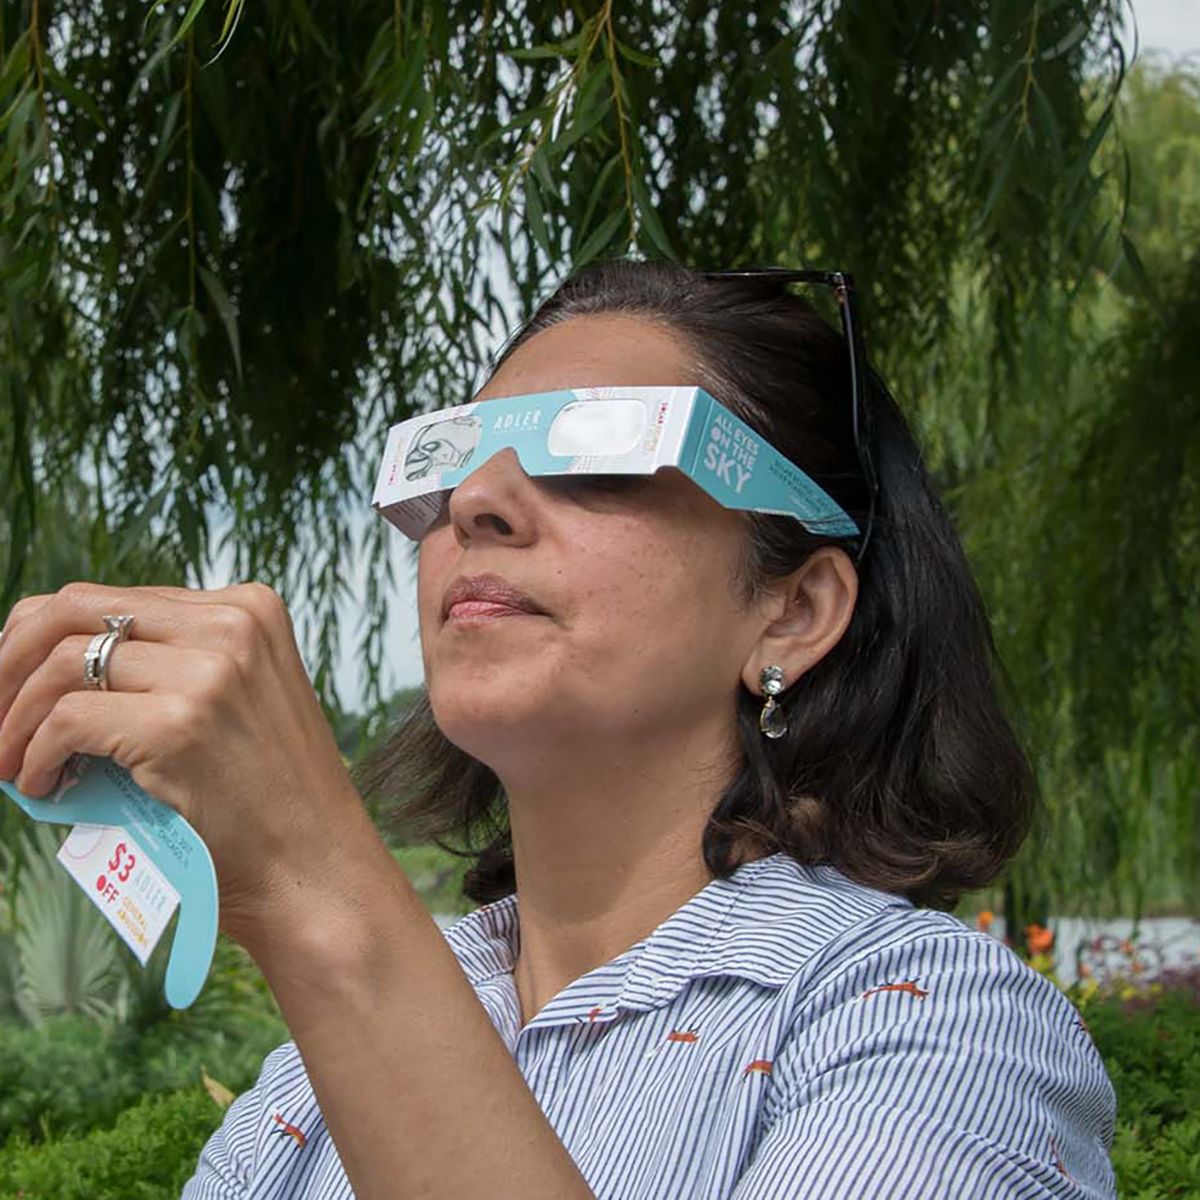 Let Nature Be Your Eclipse Viewing Guide